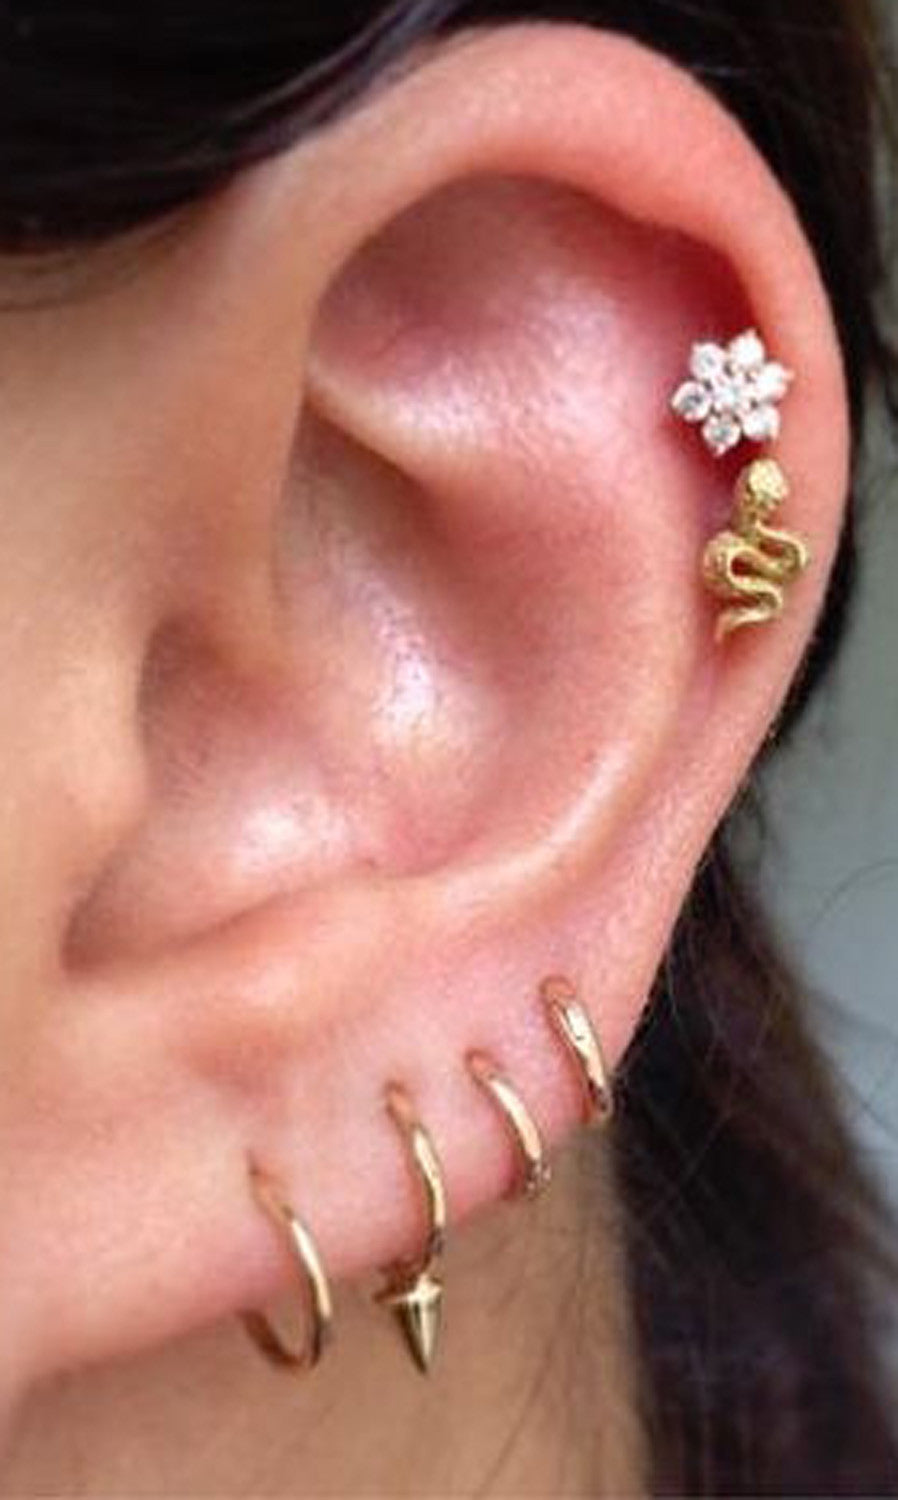 surgical new itm stud gold certified loading is sterile image ear studs lobe s earrings piercing silver